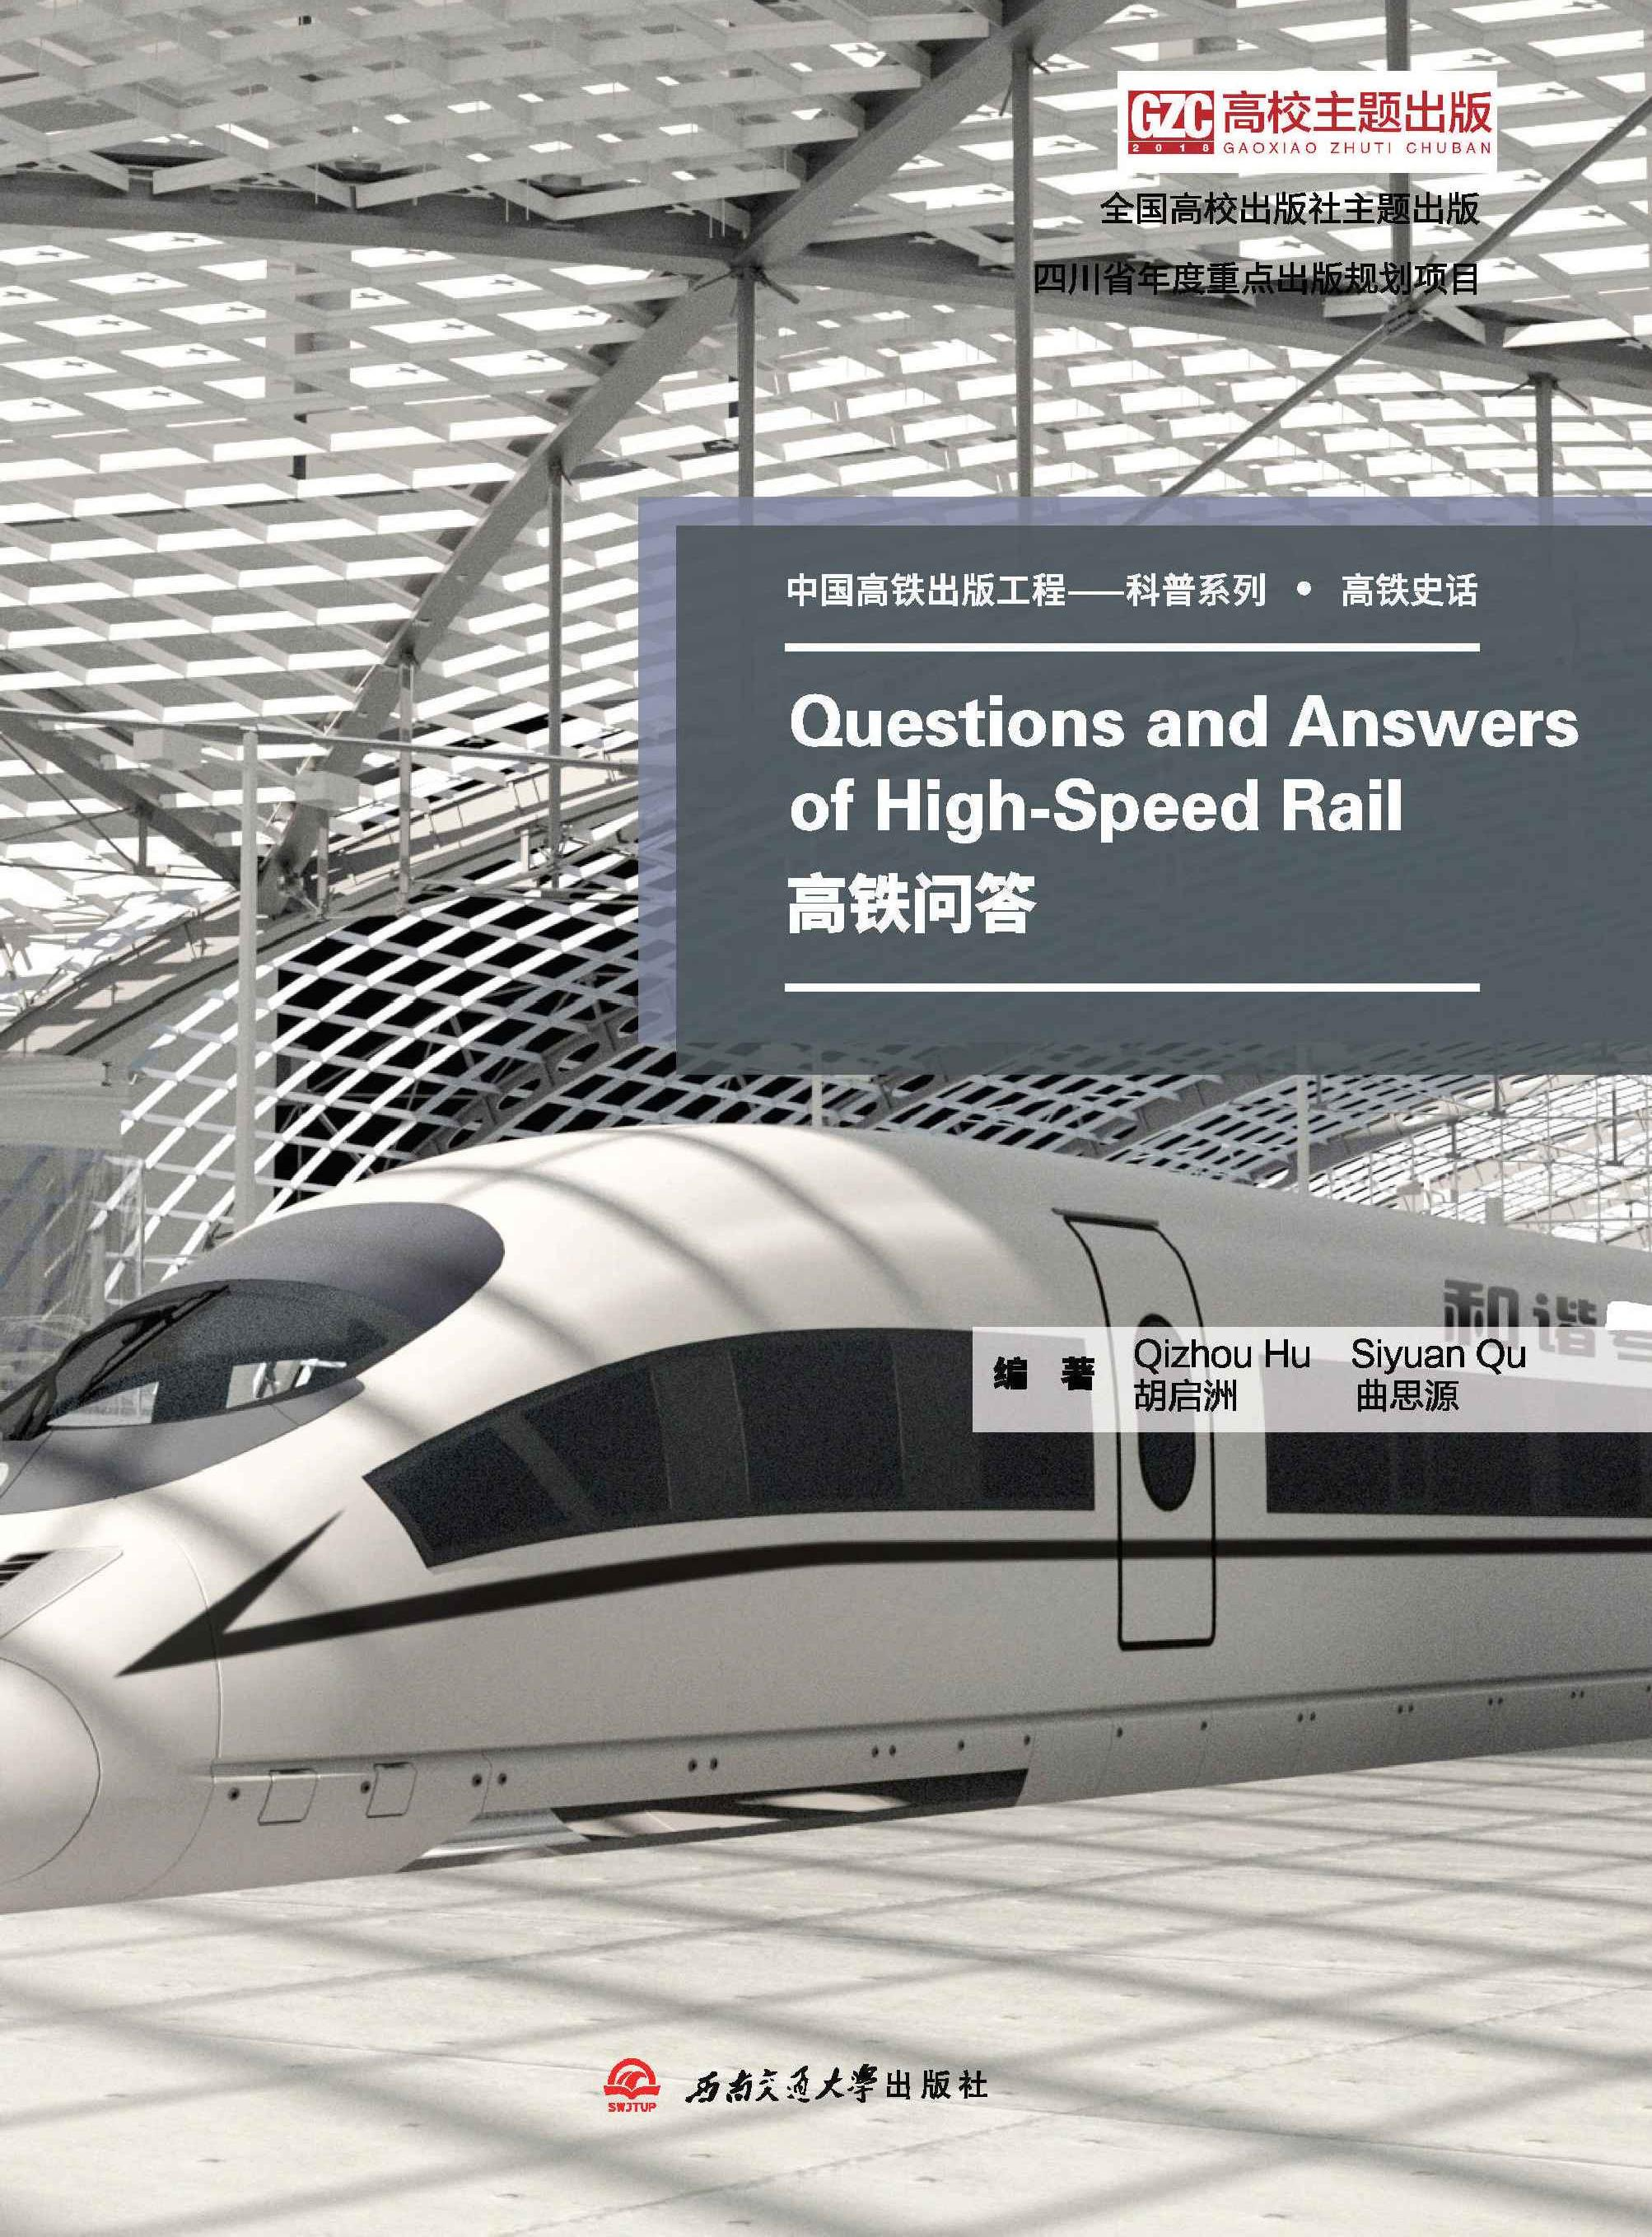 Questions and Answers of High-Speed Rail